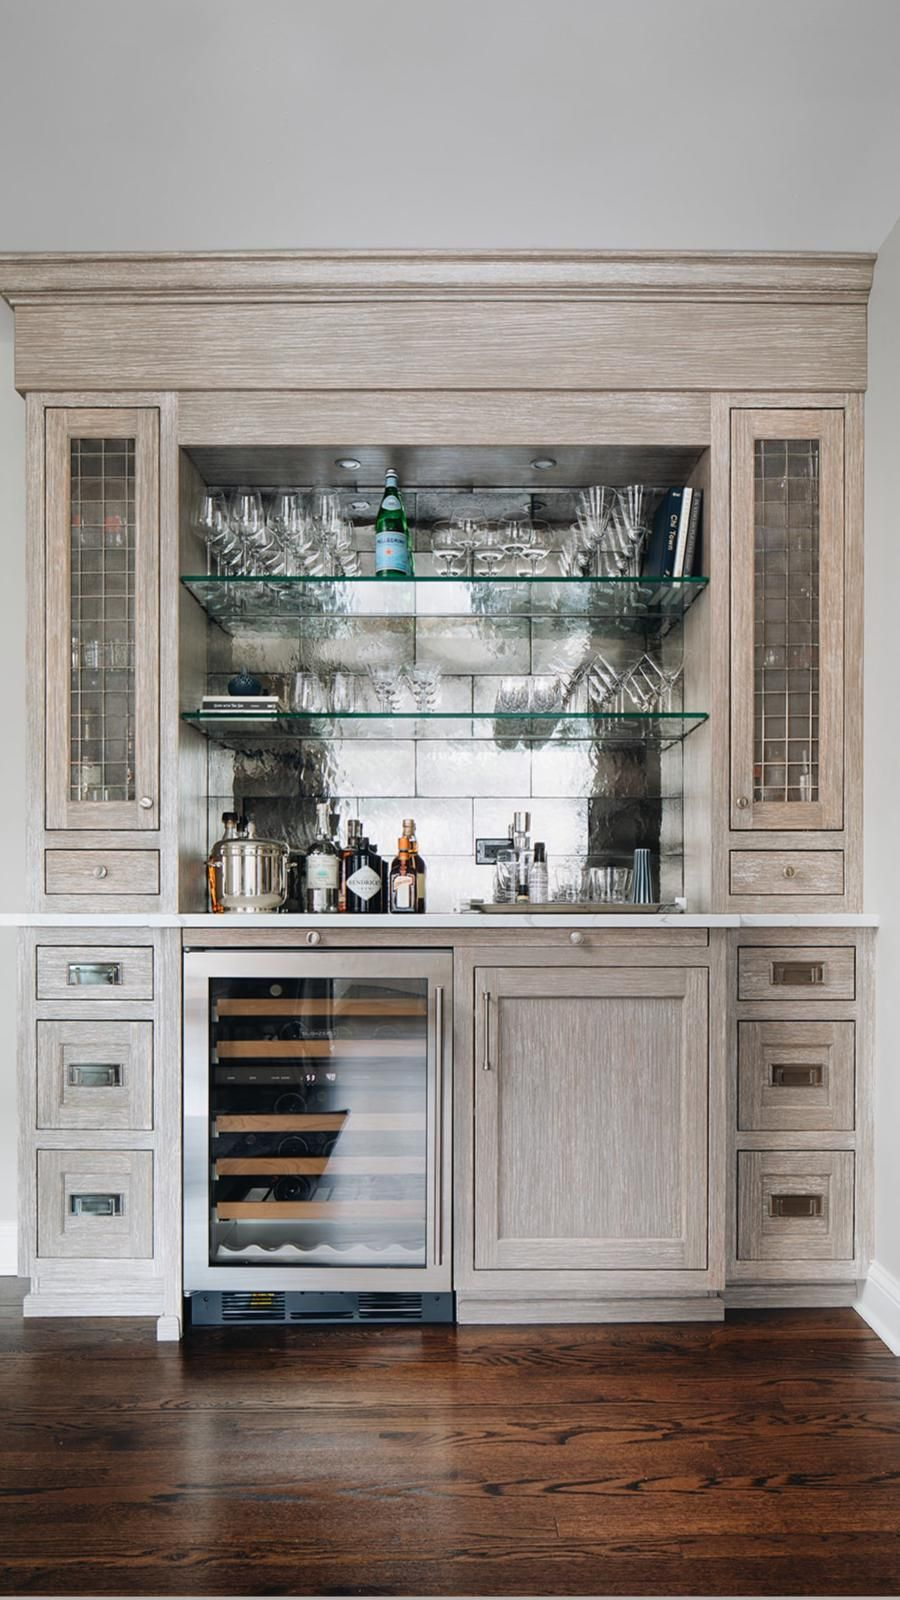 5 Things about this Kitchen that just make sense!